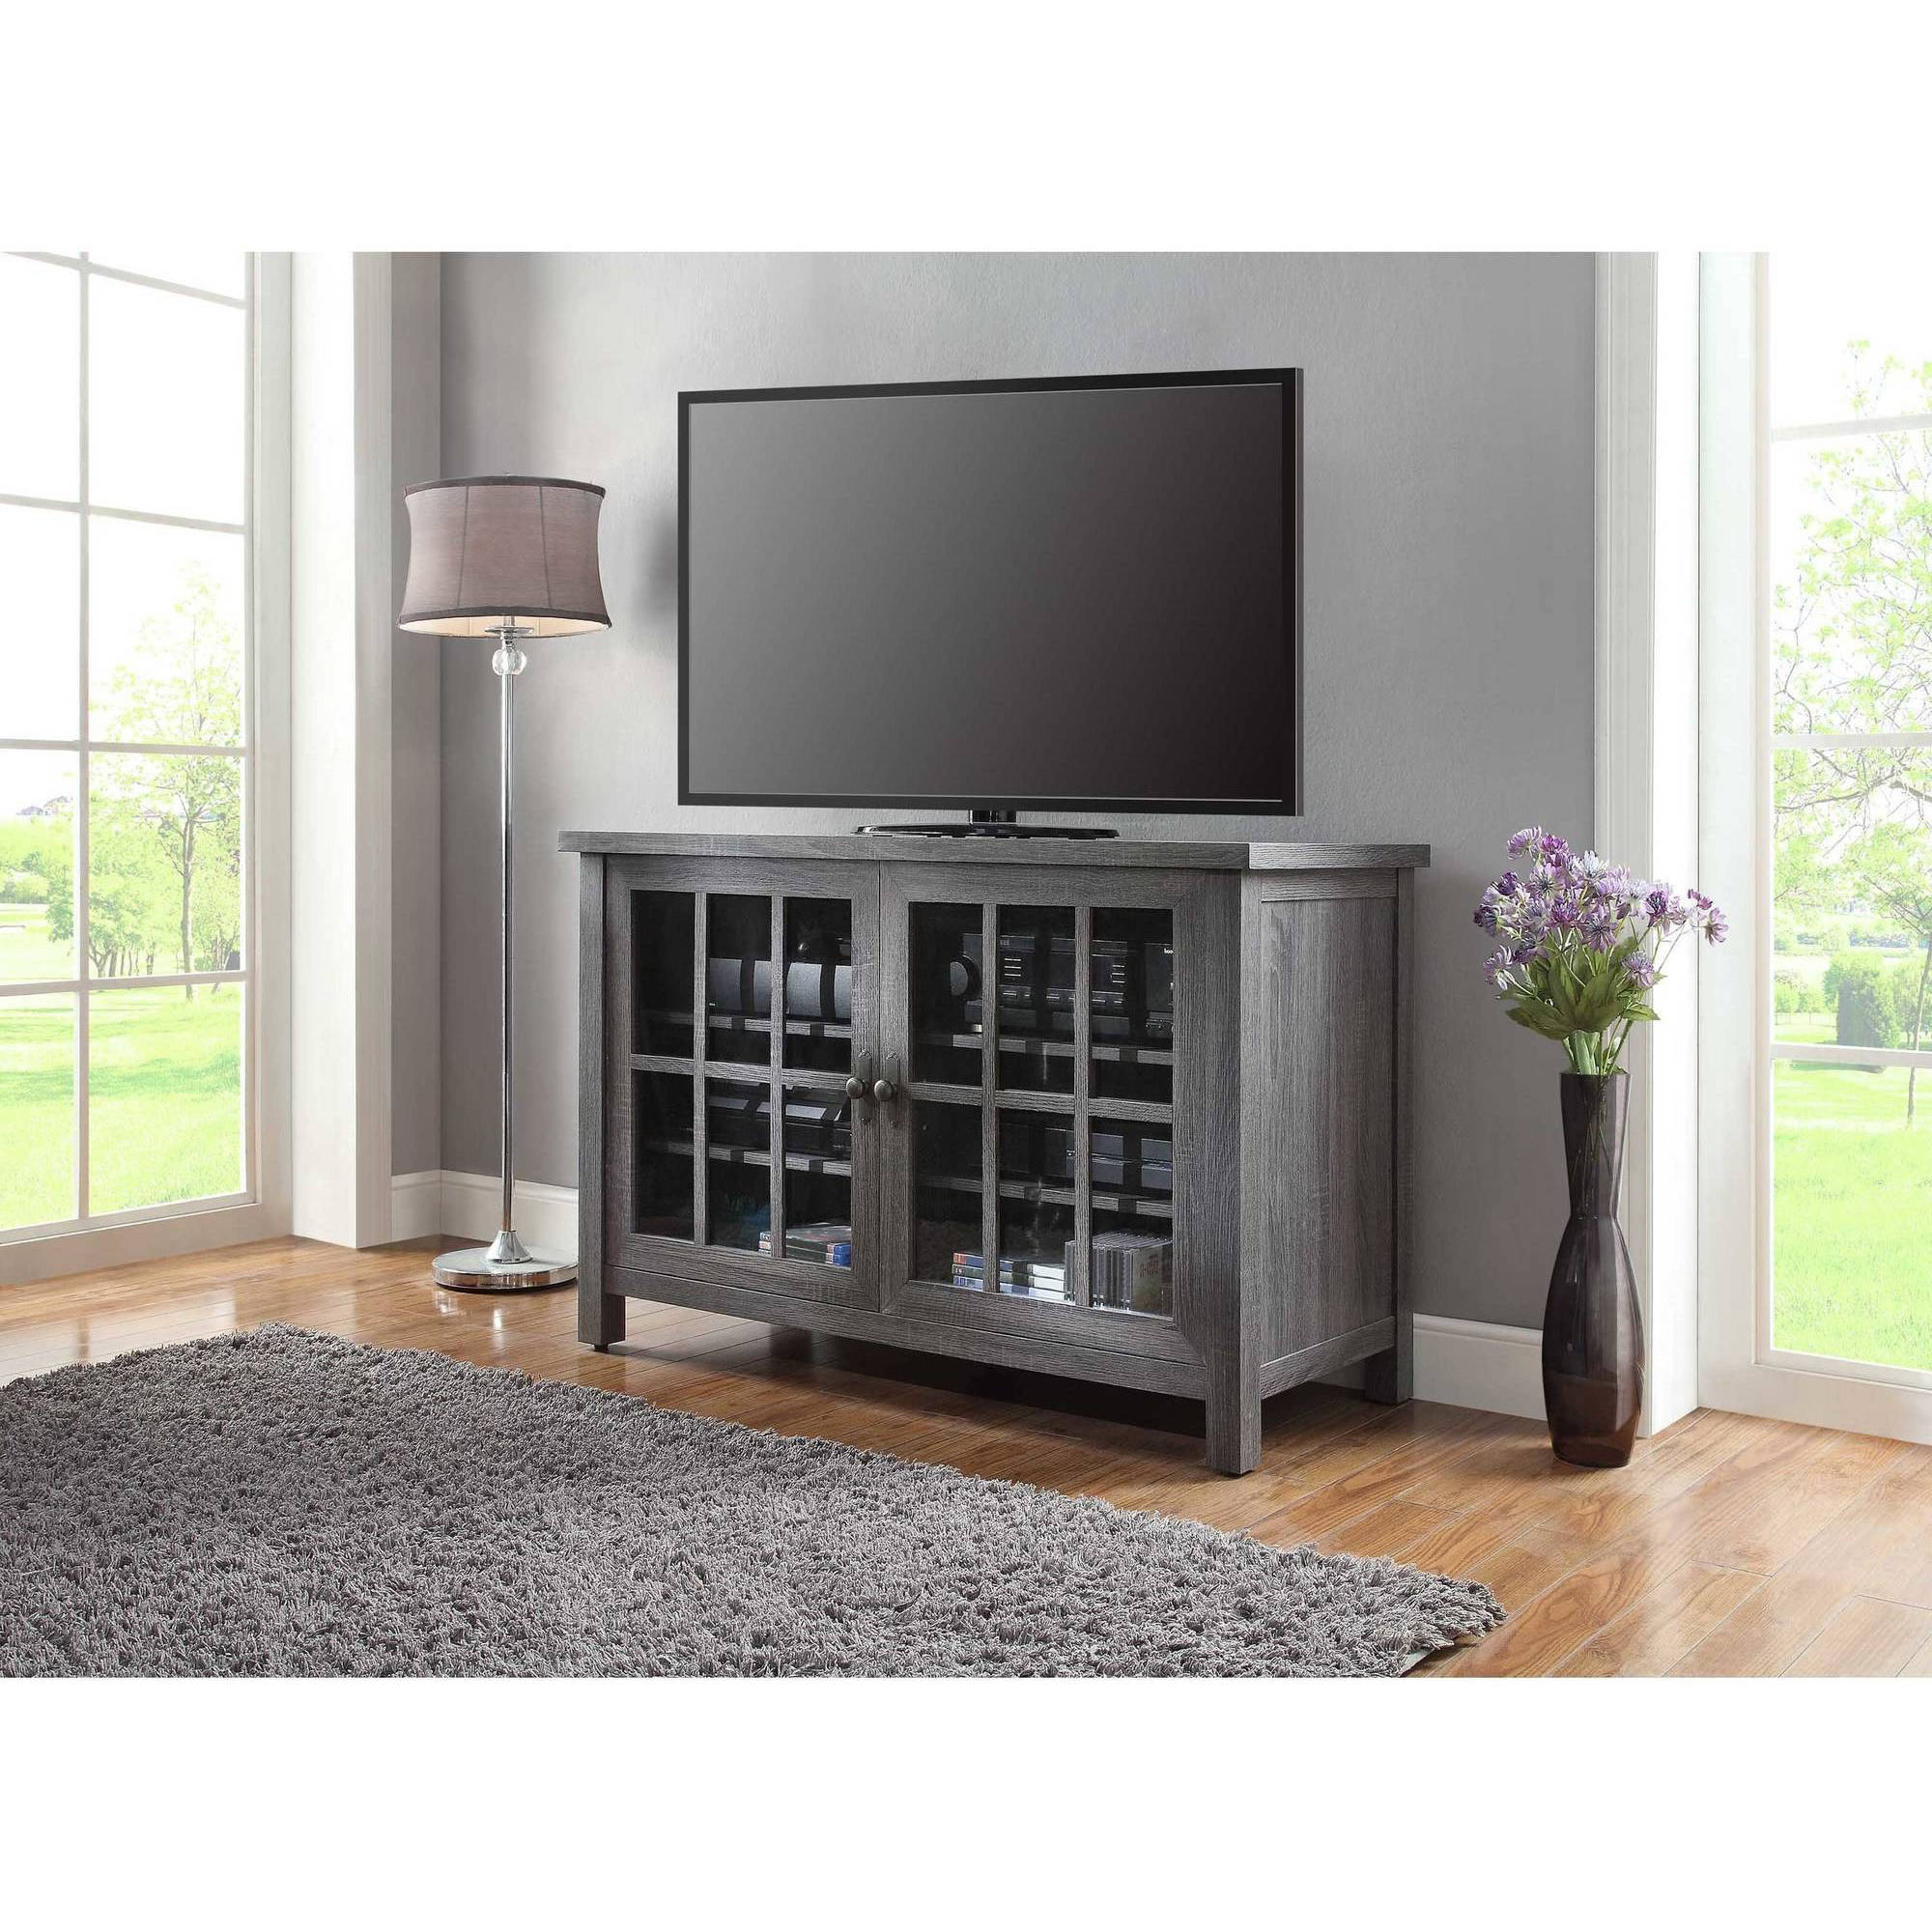 Better Homes And Gardens Oxford Square Tv Console For Tvs Up To 55 Pertaining To Oxford 60 Inch Tv Stands (Gallery 14 of 20)